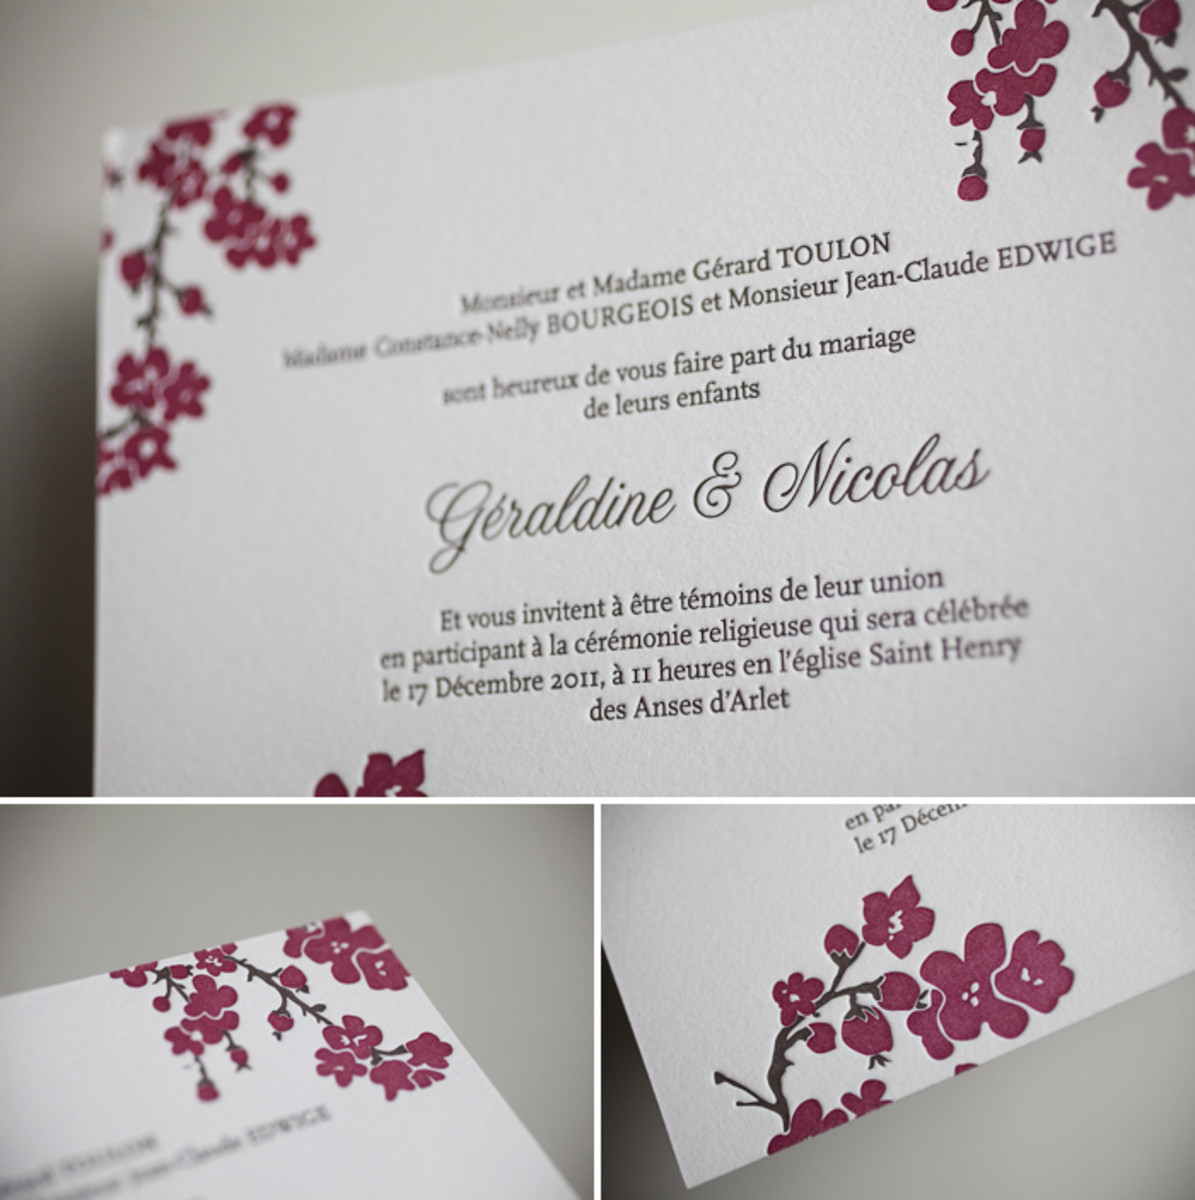 Amy Graham Stigler's Mimosa invitation design. For more info contact them by email at hello@bellafigura.com